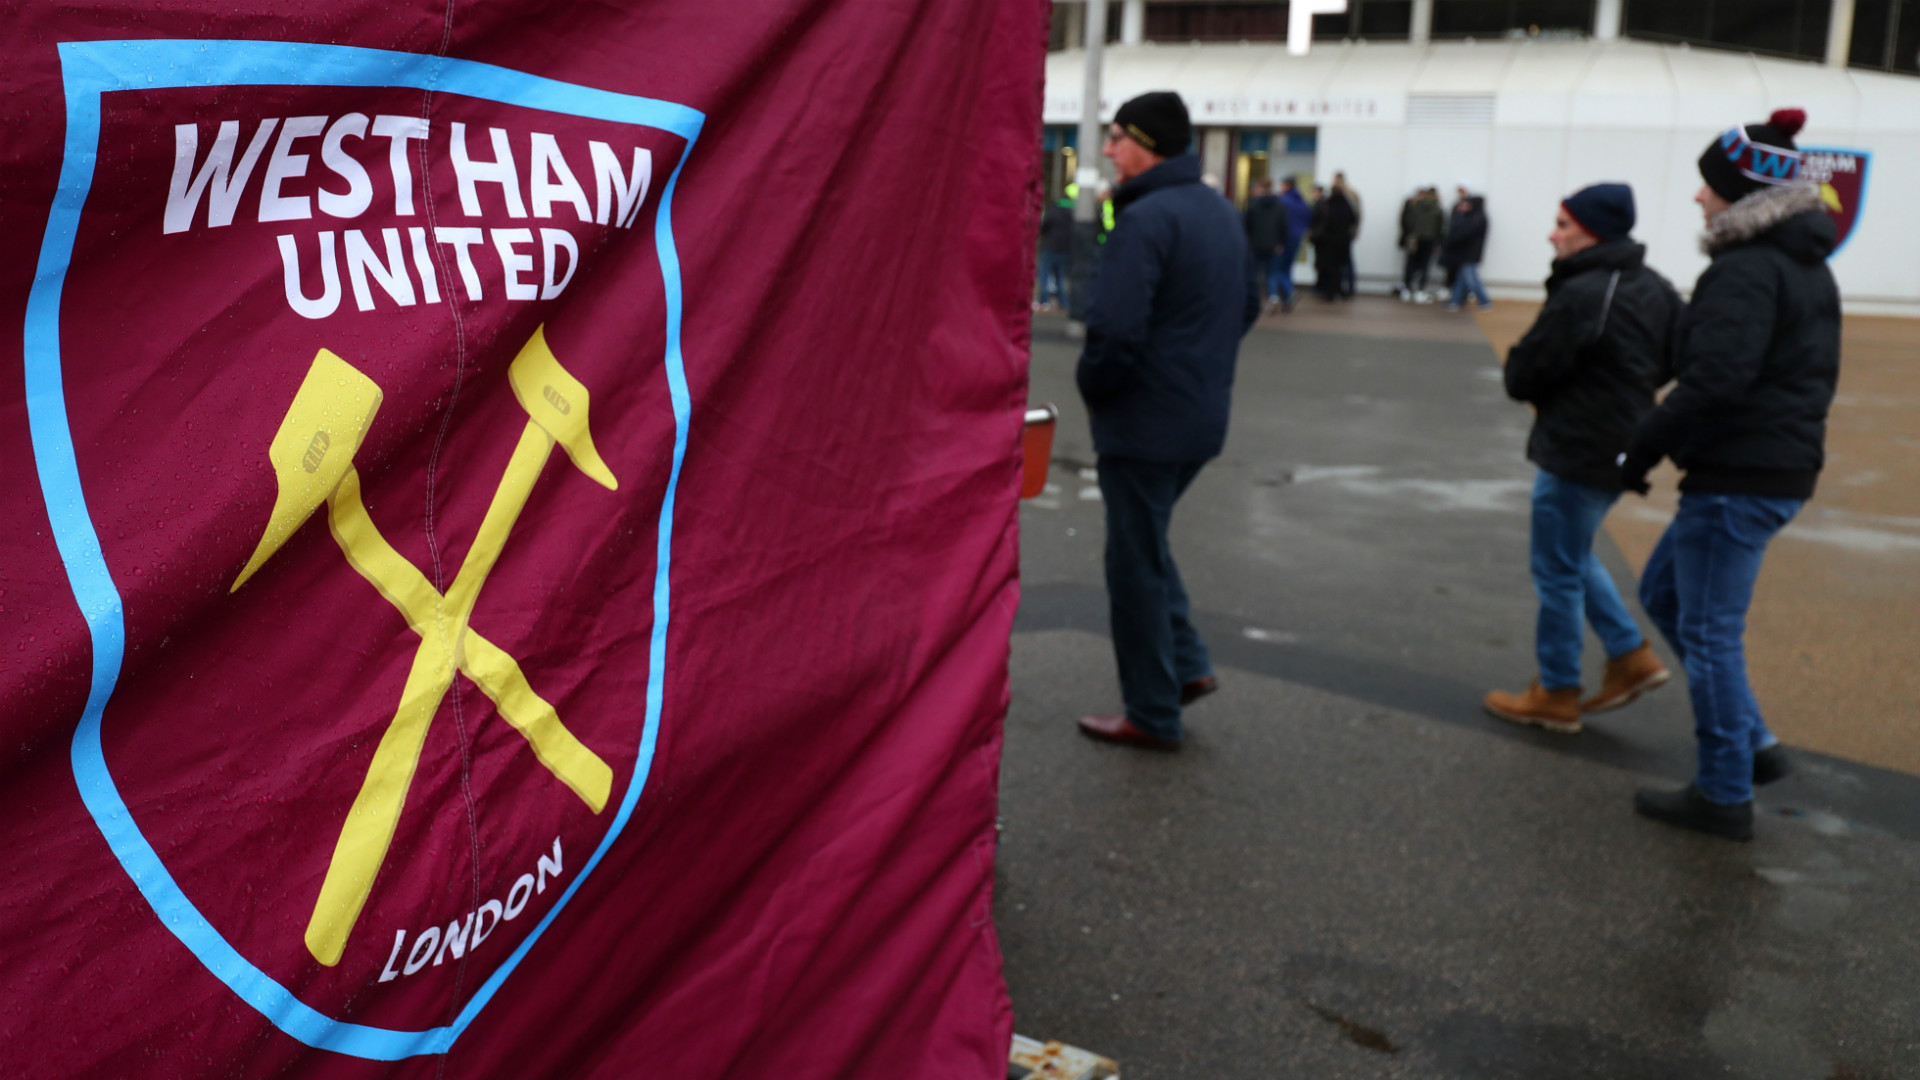 West Ham executive caught discriminating against African players in leaked email